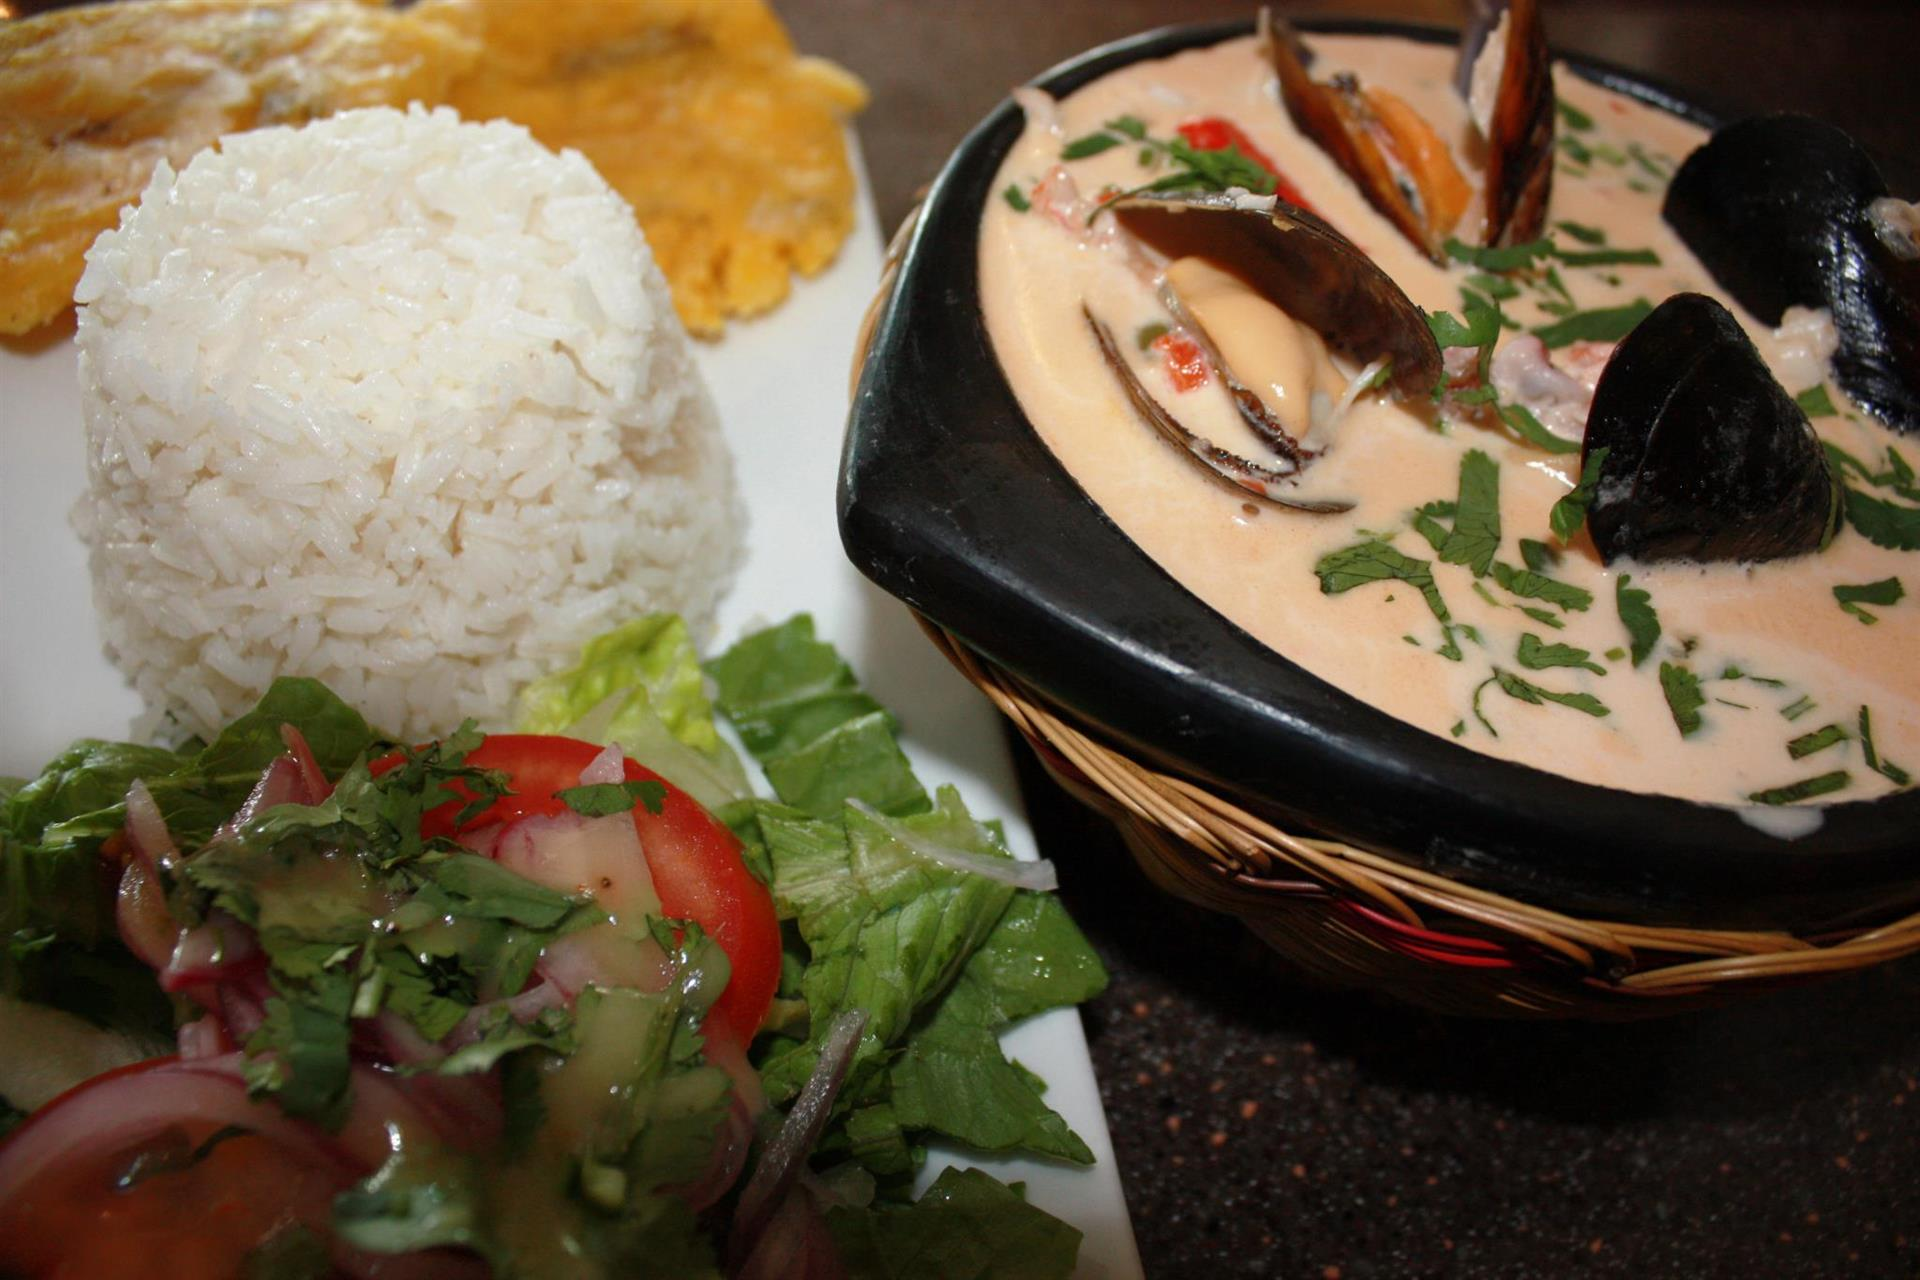 Cazuela De Mariscos: Seafood chowder. Served with white rice & a house salad.